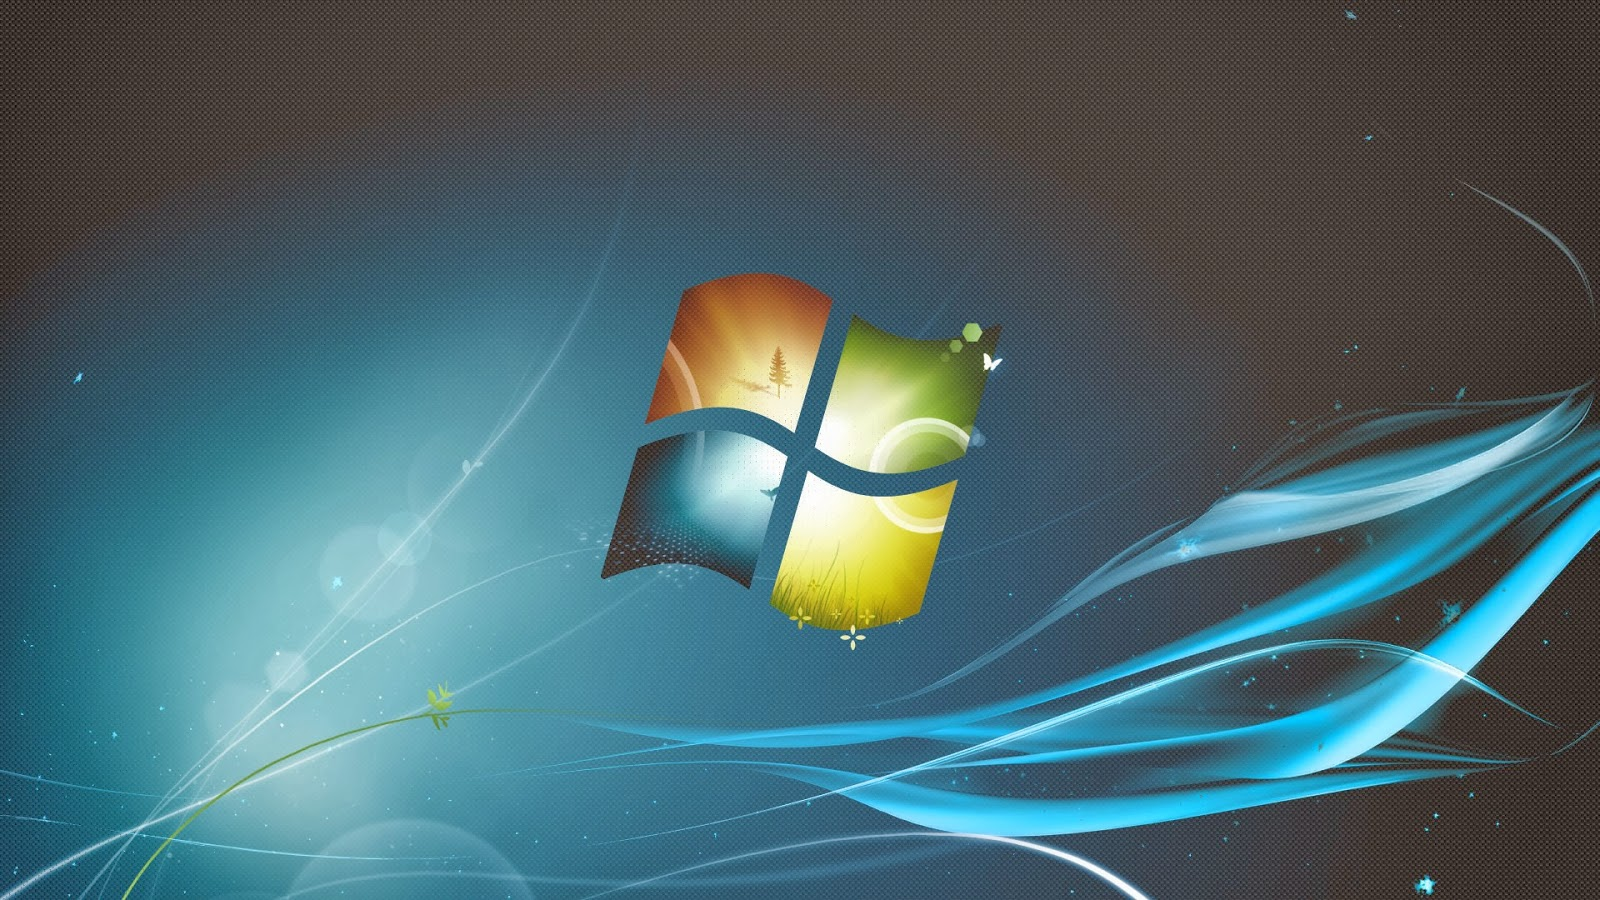 Free Download Windows 7 Hd Wallpapers 1080p 1600x900 For